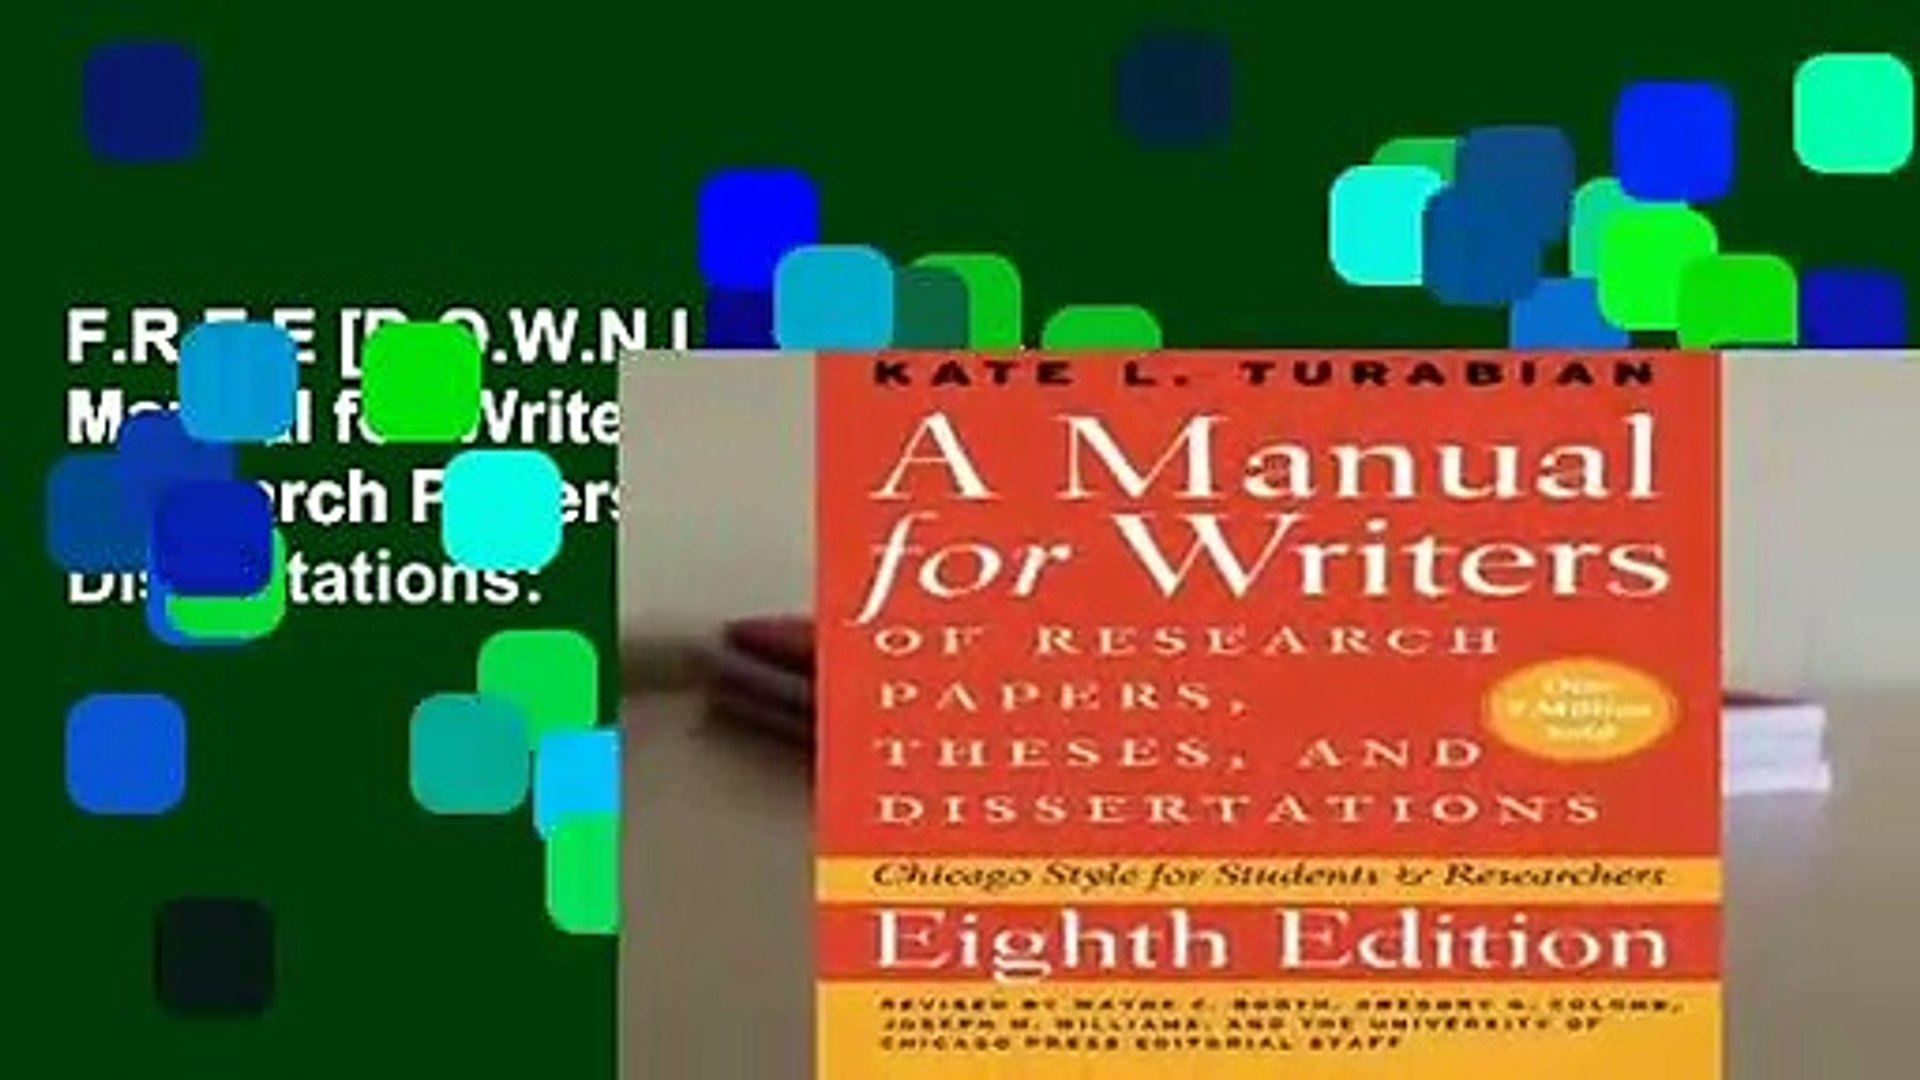 017 X1080 Dop Research Paper Manual For Writers Of Papers Theses And Dissertations Fearsome A Ed 8 Full